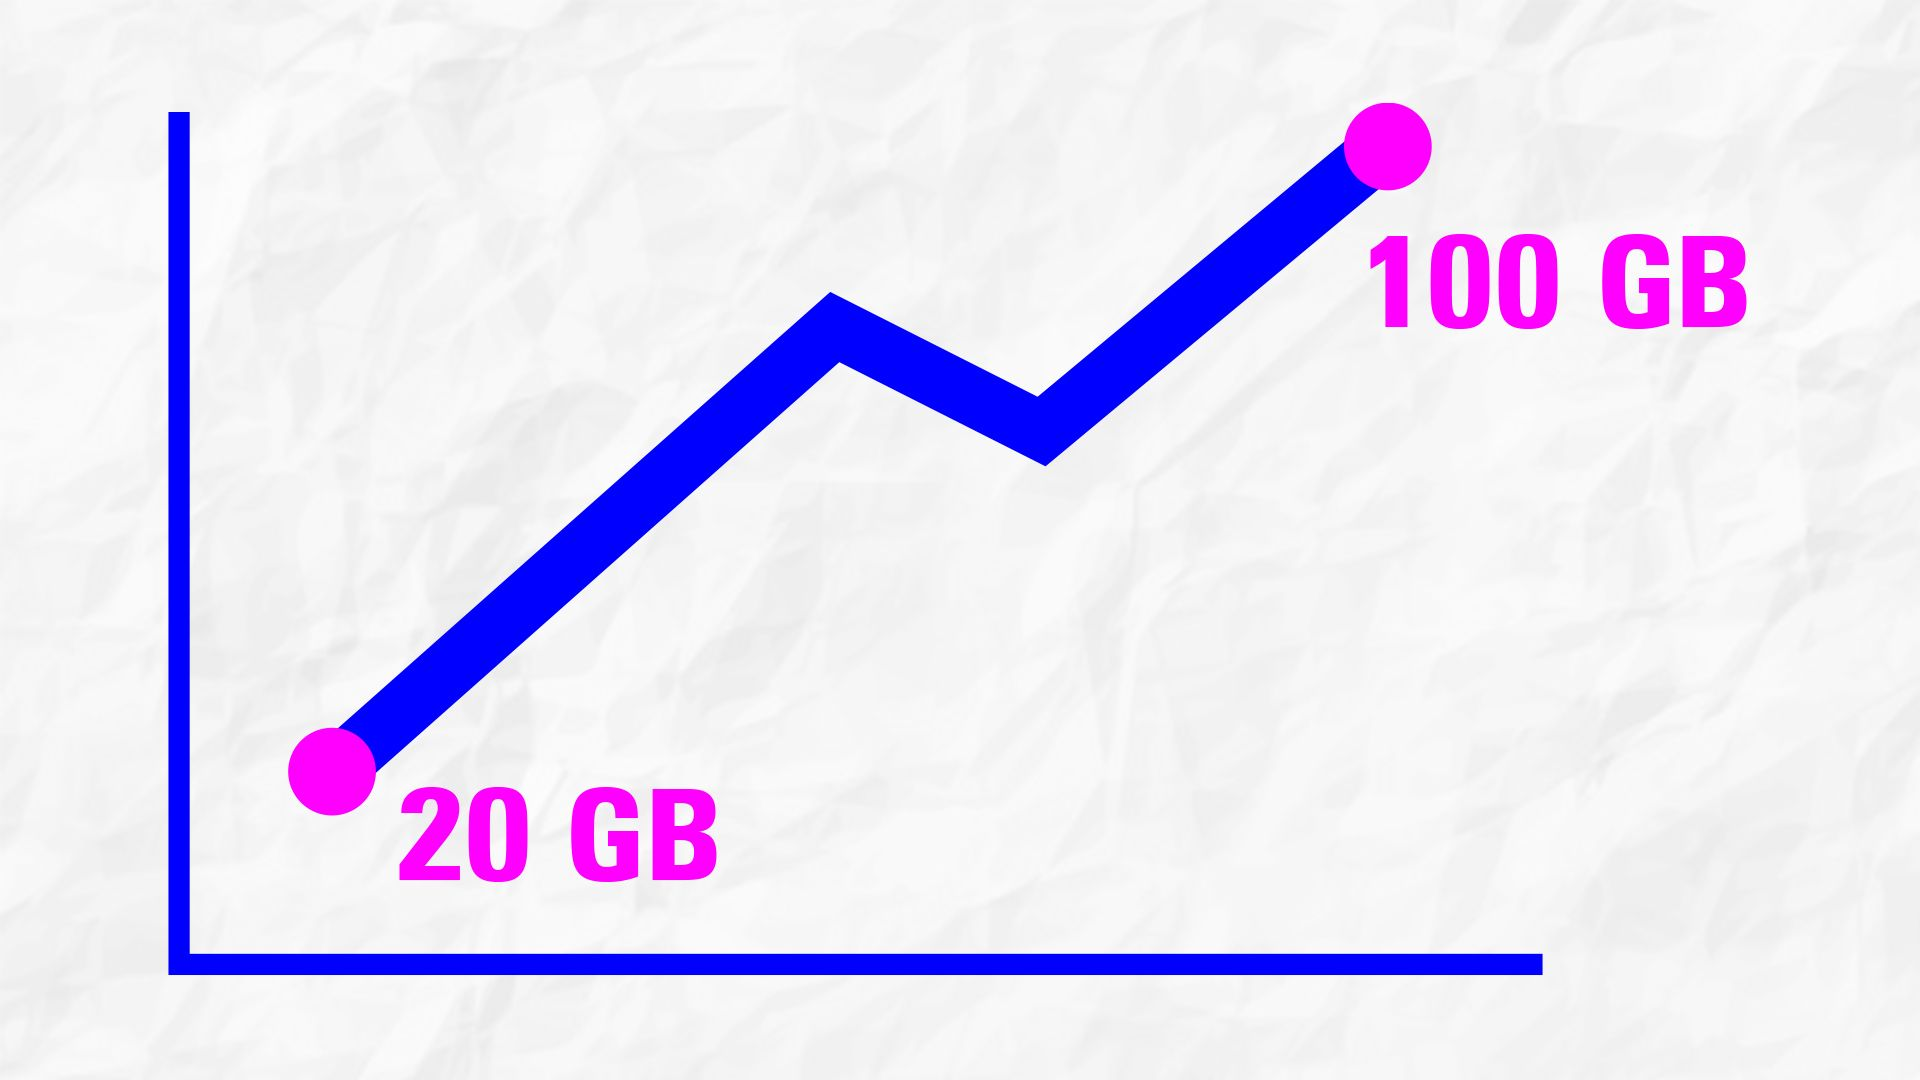 From 20GB to 100GB - How $20 for 20 GB Has Evolved